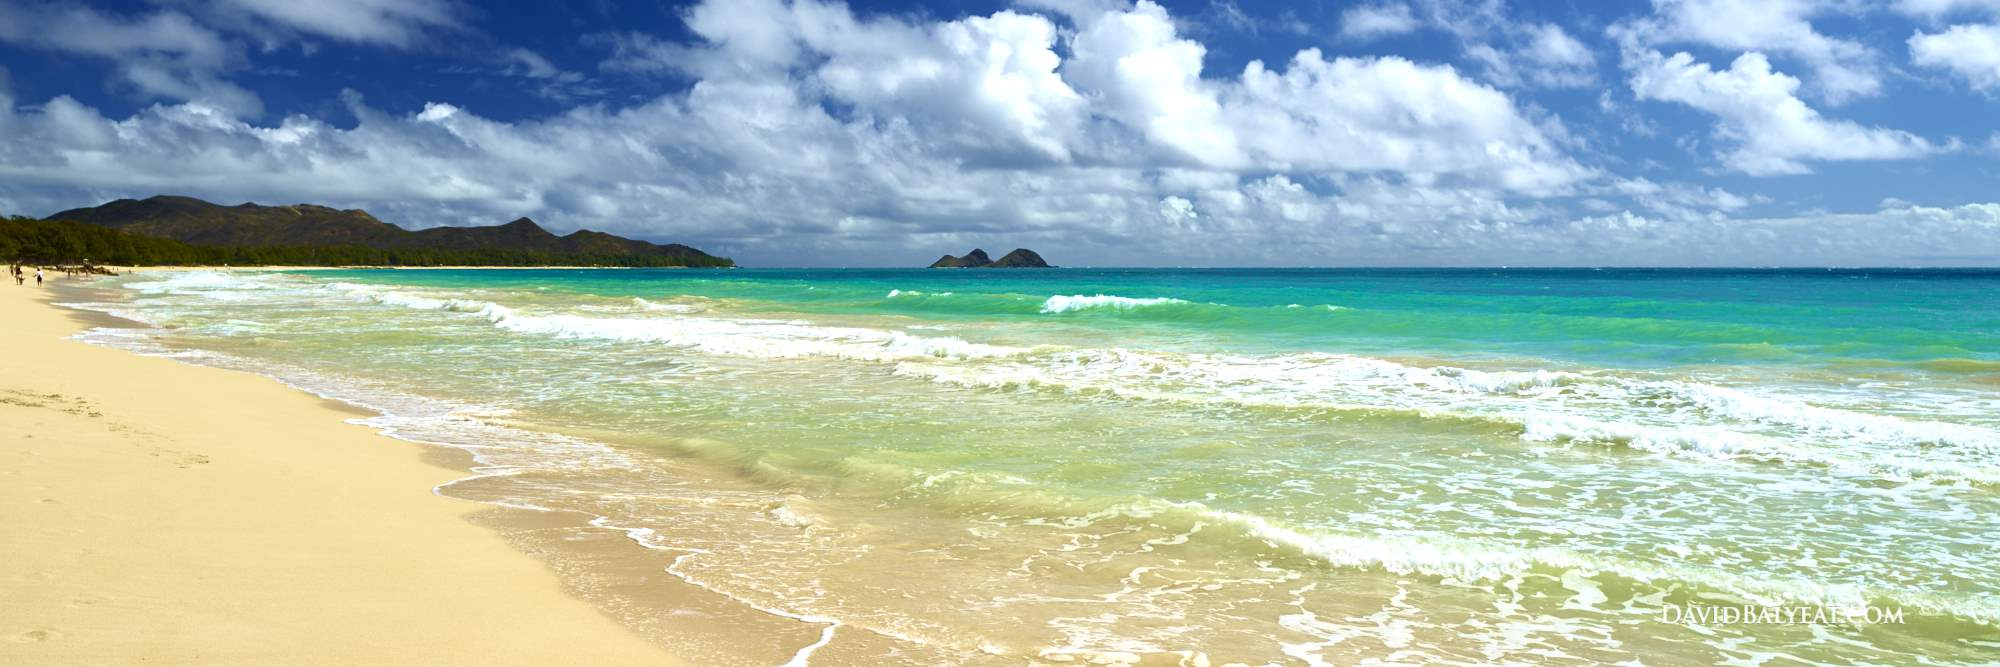 Waimanalo Beach Park Oahu Hawaii Panoramic High Definition HD Professional Landscape Photography